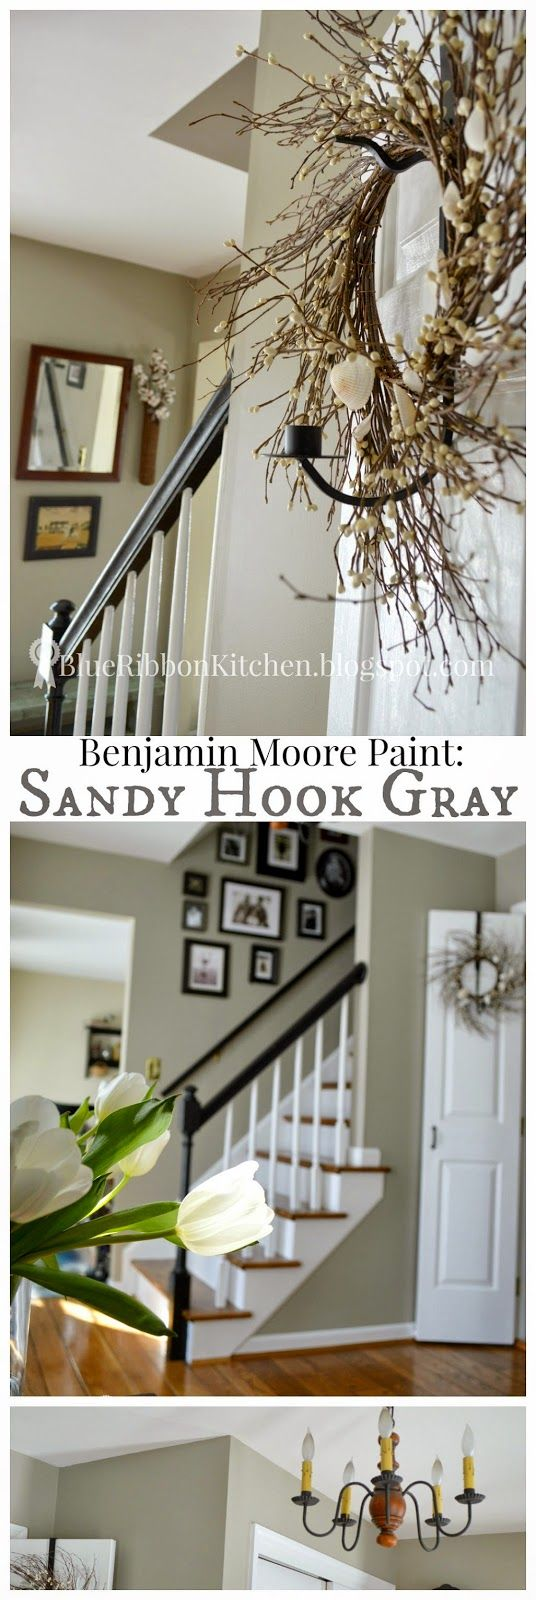 Blue Ribbon Kitchen: 50 Shades of Gray Paint: Benjamin Moore in Sandy Hook Gray.  Updated entryway/foyer.  Easy DIY painting tips.